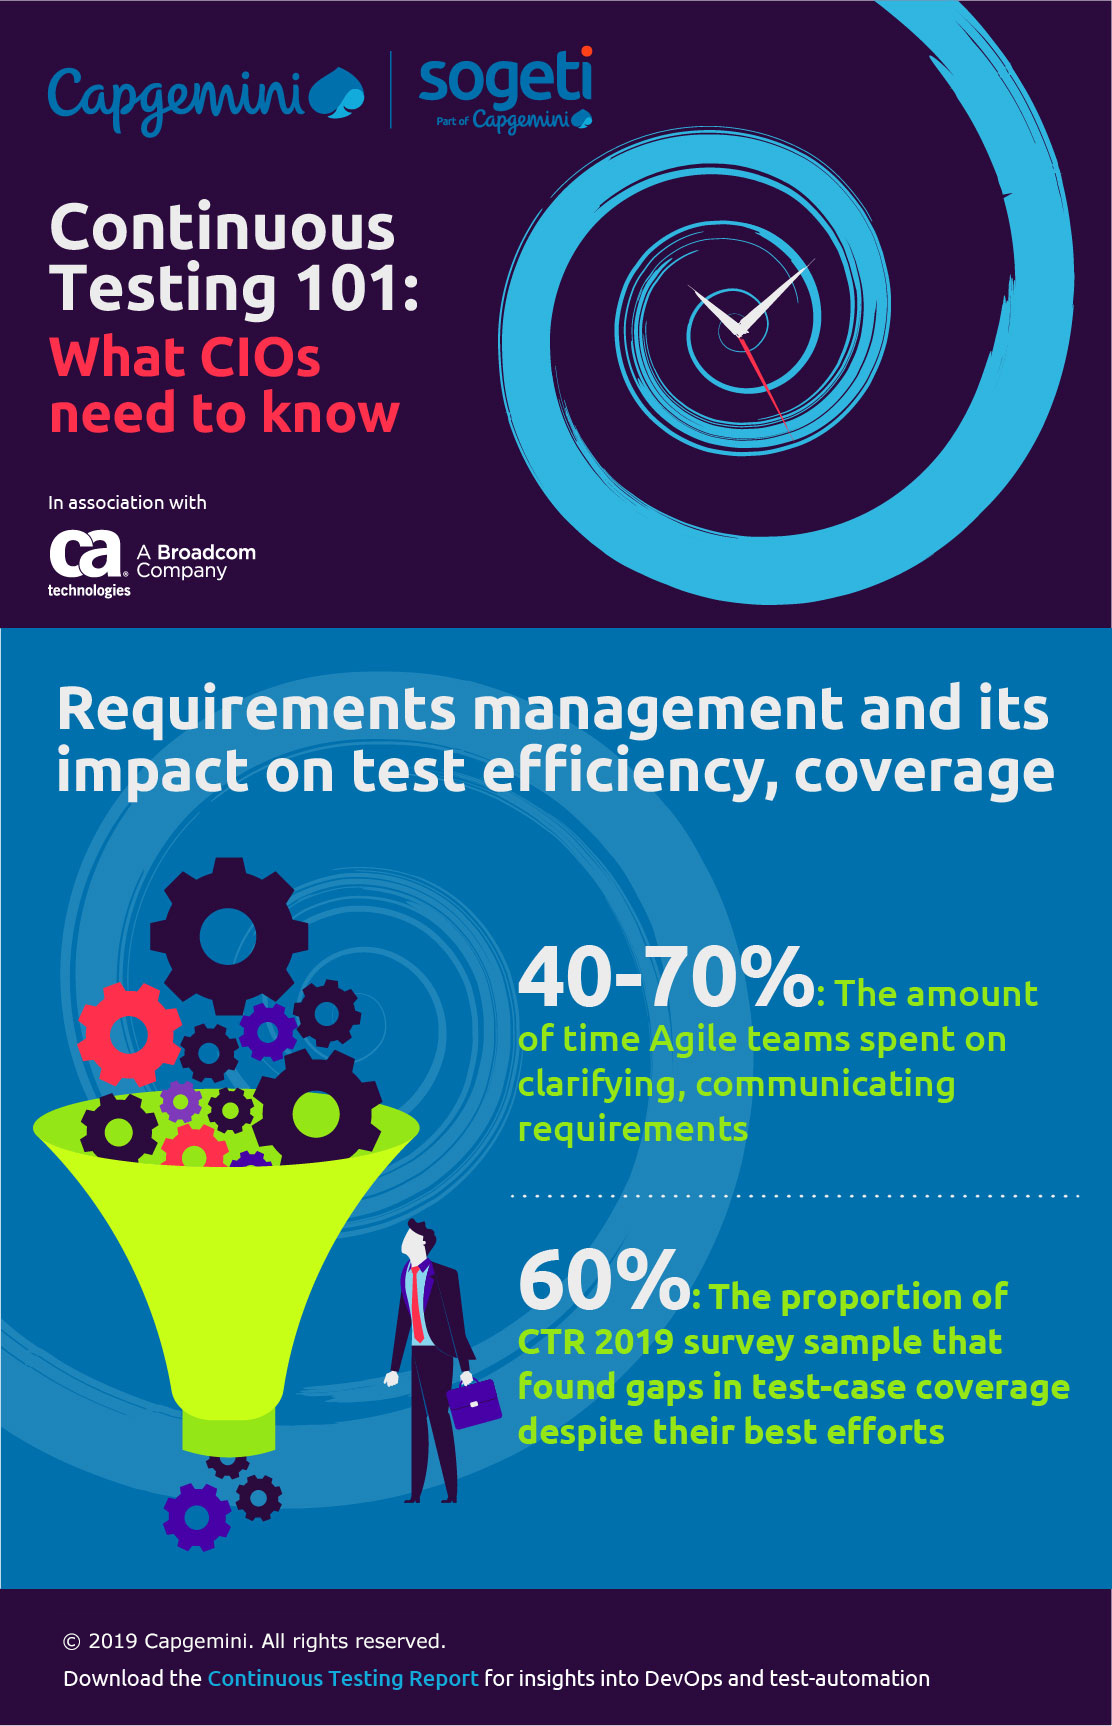 Continuous Testing Report 2019 Infographic